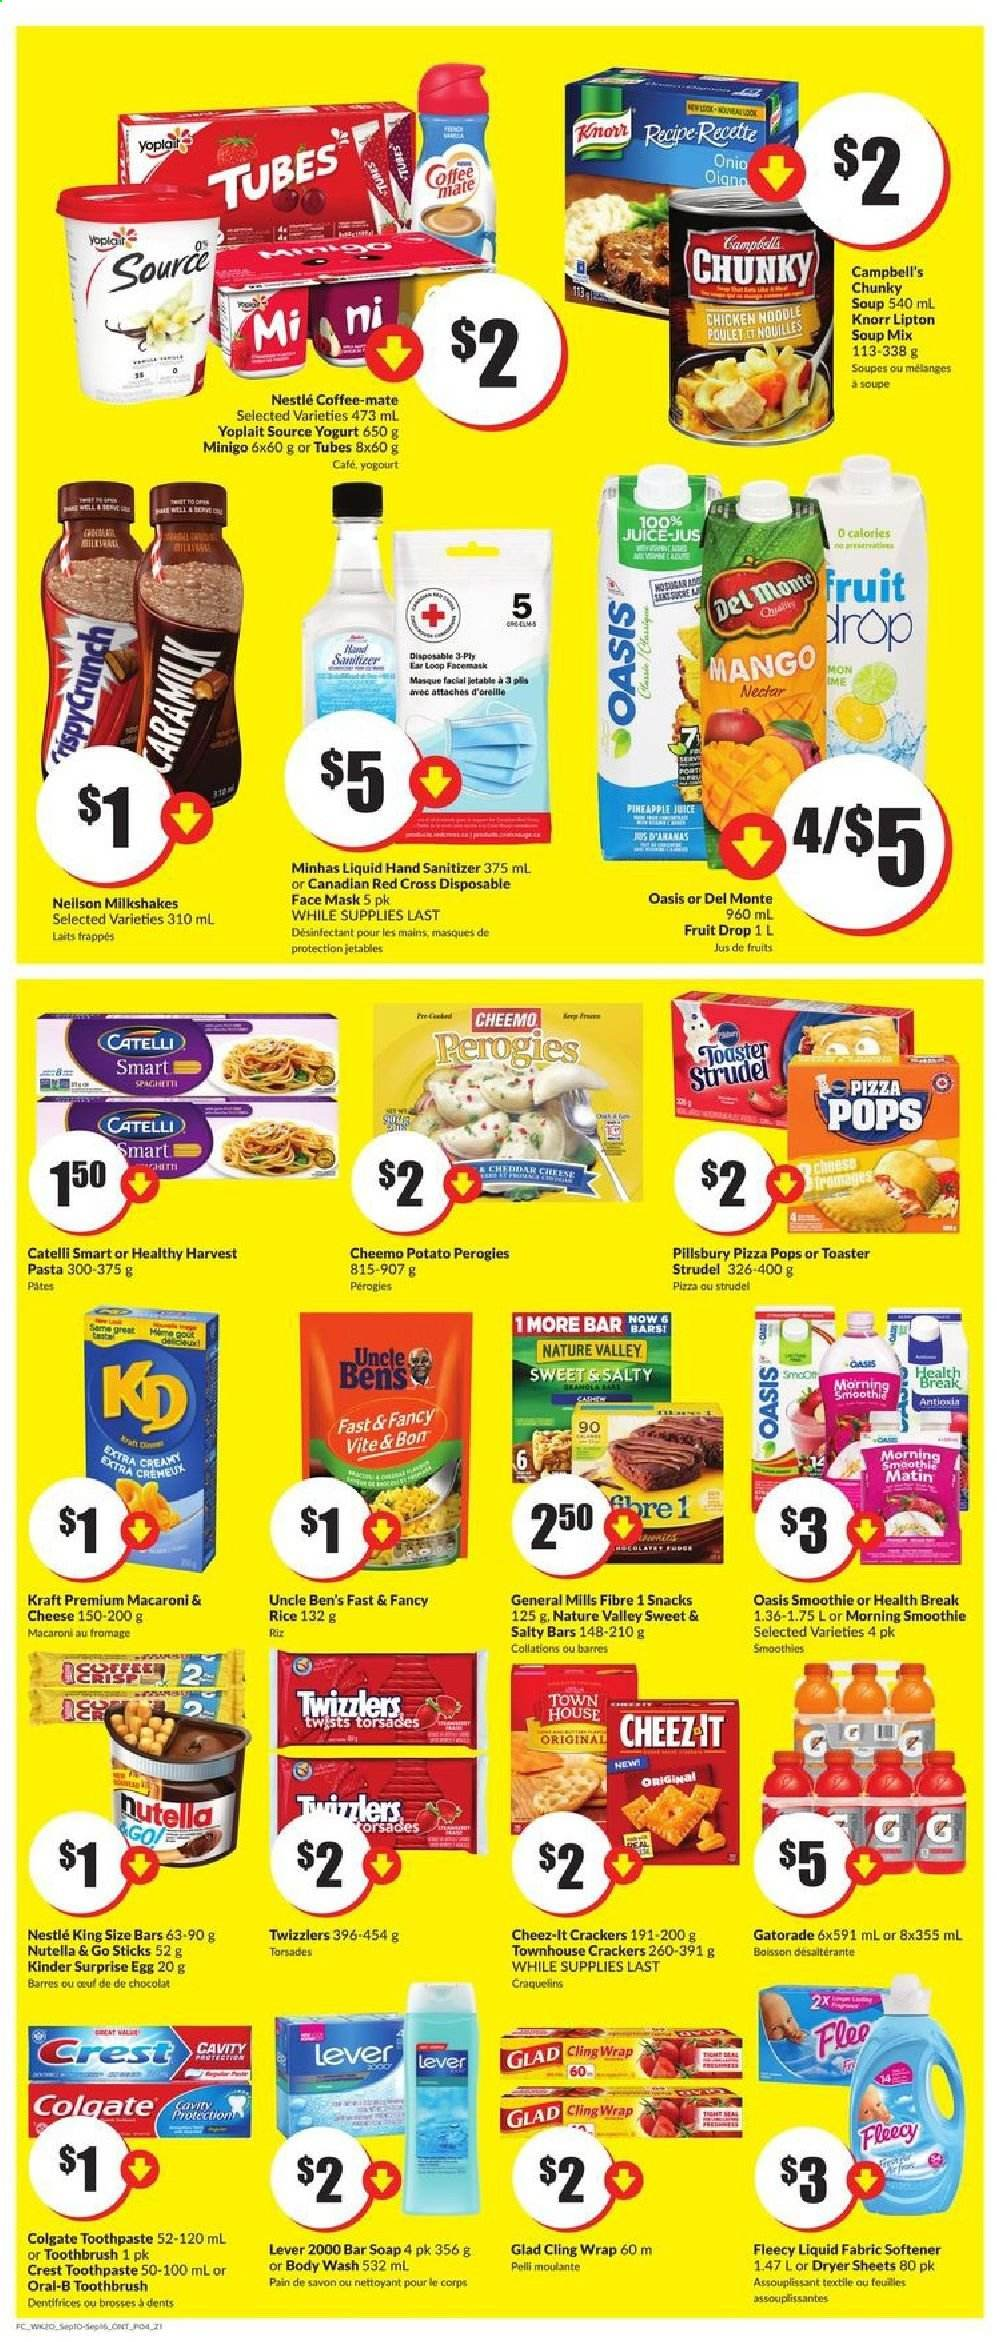 FreshCo. Flyer - September 10, 2020 - September 16, 2020 - Sales products - body wash, campbell's, coffee-mate, crackers, crest, del monte, dryer, eggs, colgate, macaroni & cheese, mango, mask, mate, nestlé, rice, spaghetti, toothbrush, wrap, yogurt, pineapple juice, pineapple, pizza, chicken, noodle, nutella, oral-b, cheese, juice, soup mix, macaroni, soup, toothpaste, snack, softener, pasta, lipton, knorr, toaster, poulet, chocolat, café, ananas, feuilles, soupe, surprise, masque, nettoyeur, nouilles, savon, riz, pâtes, nectar, jus, snacks, egg, fruits, kinder surprise, face mask, hand sanitizer, masque facial, smoothie, liquid, kinder, désinfectant pour les mains. Page 4.